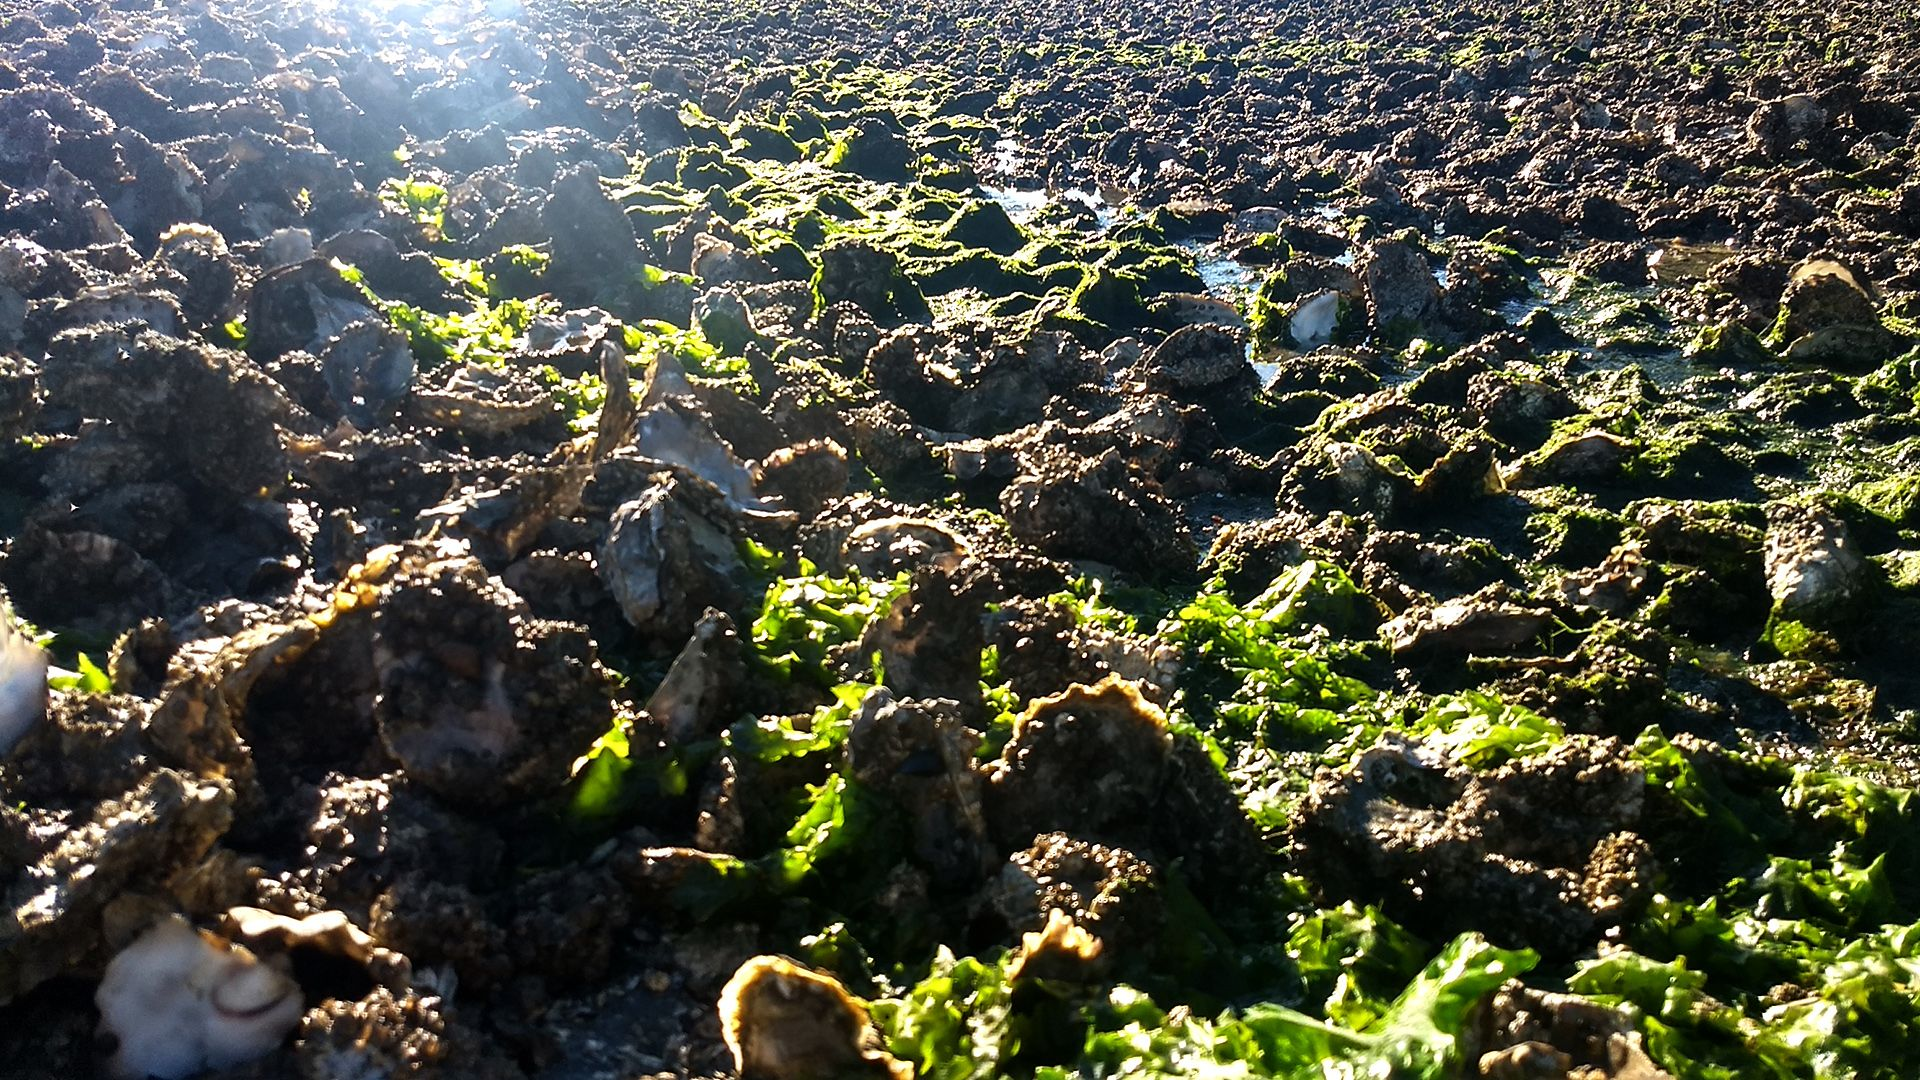 An oyster bed brightly illuminated by sunlight.